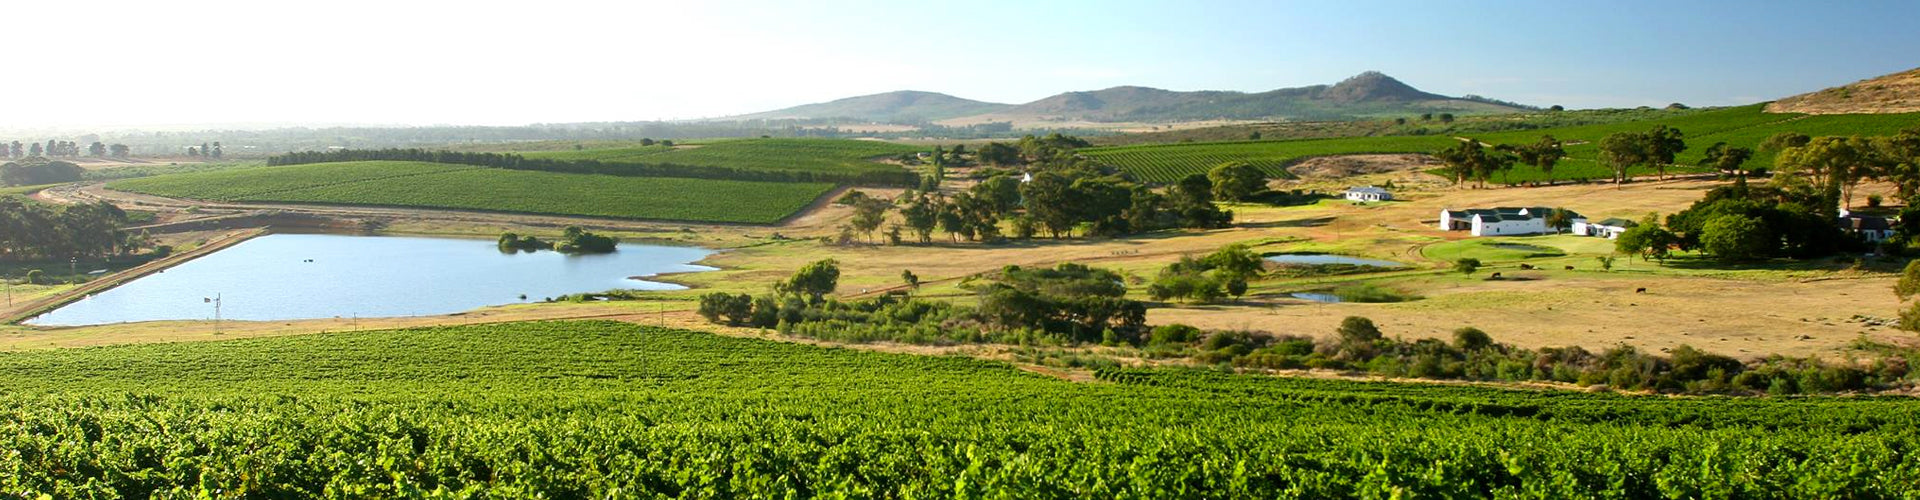 Cloof Wine Estate and Vineyards in Darling, South Africa